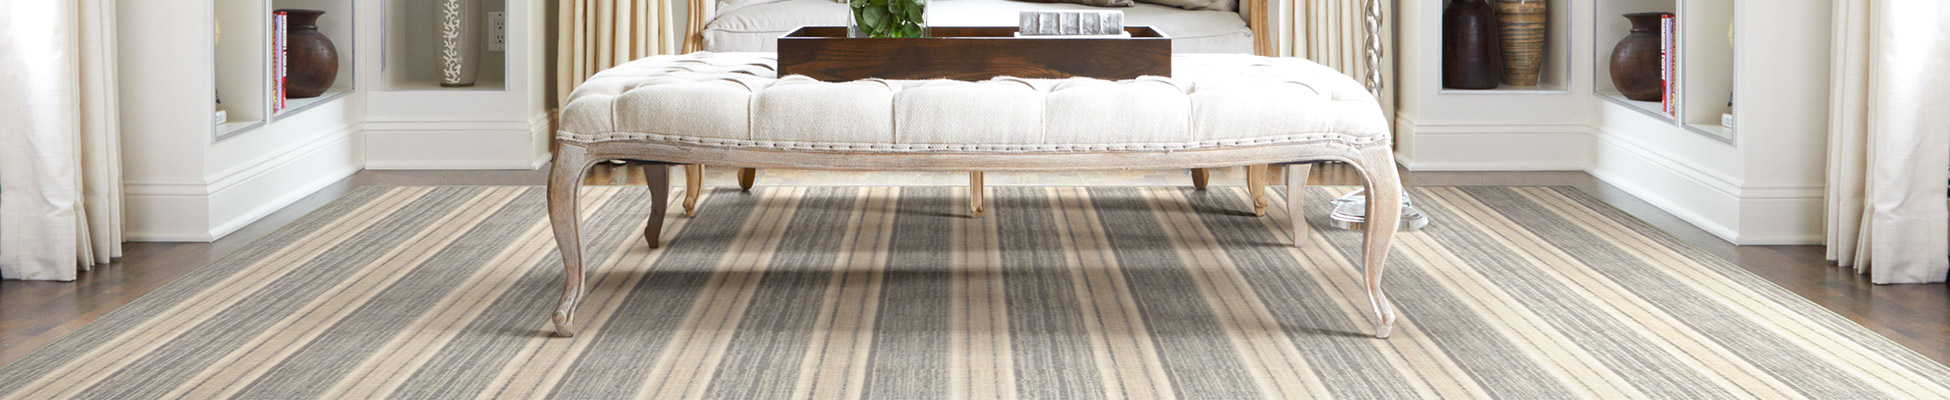 The Rug Gallery Stripes Rugs